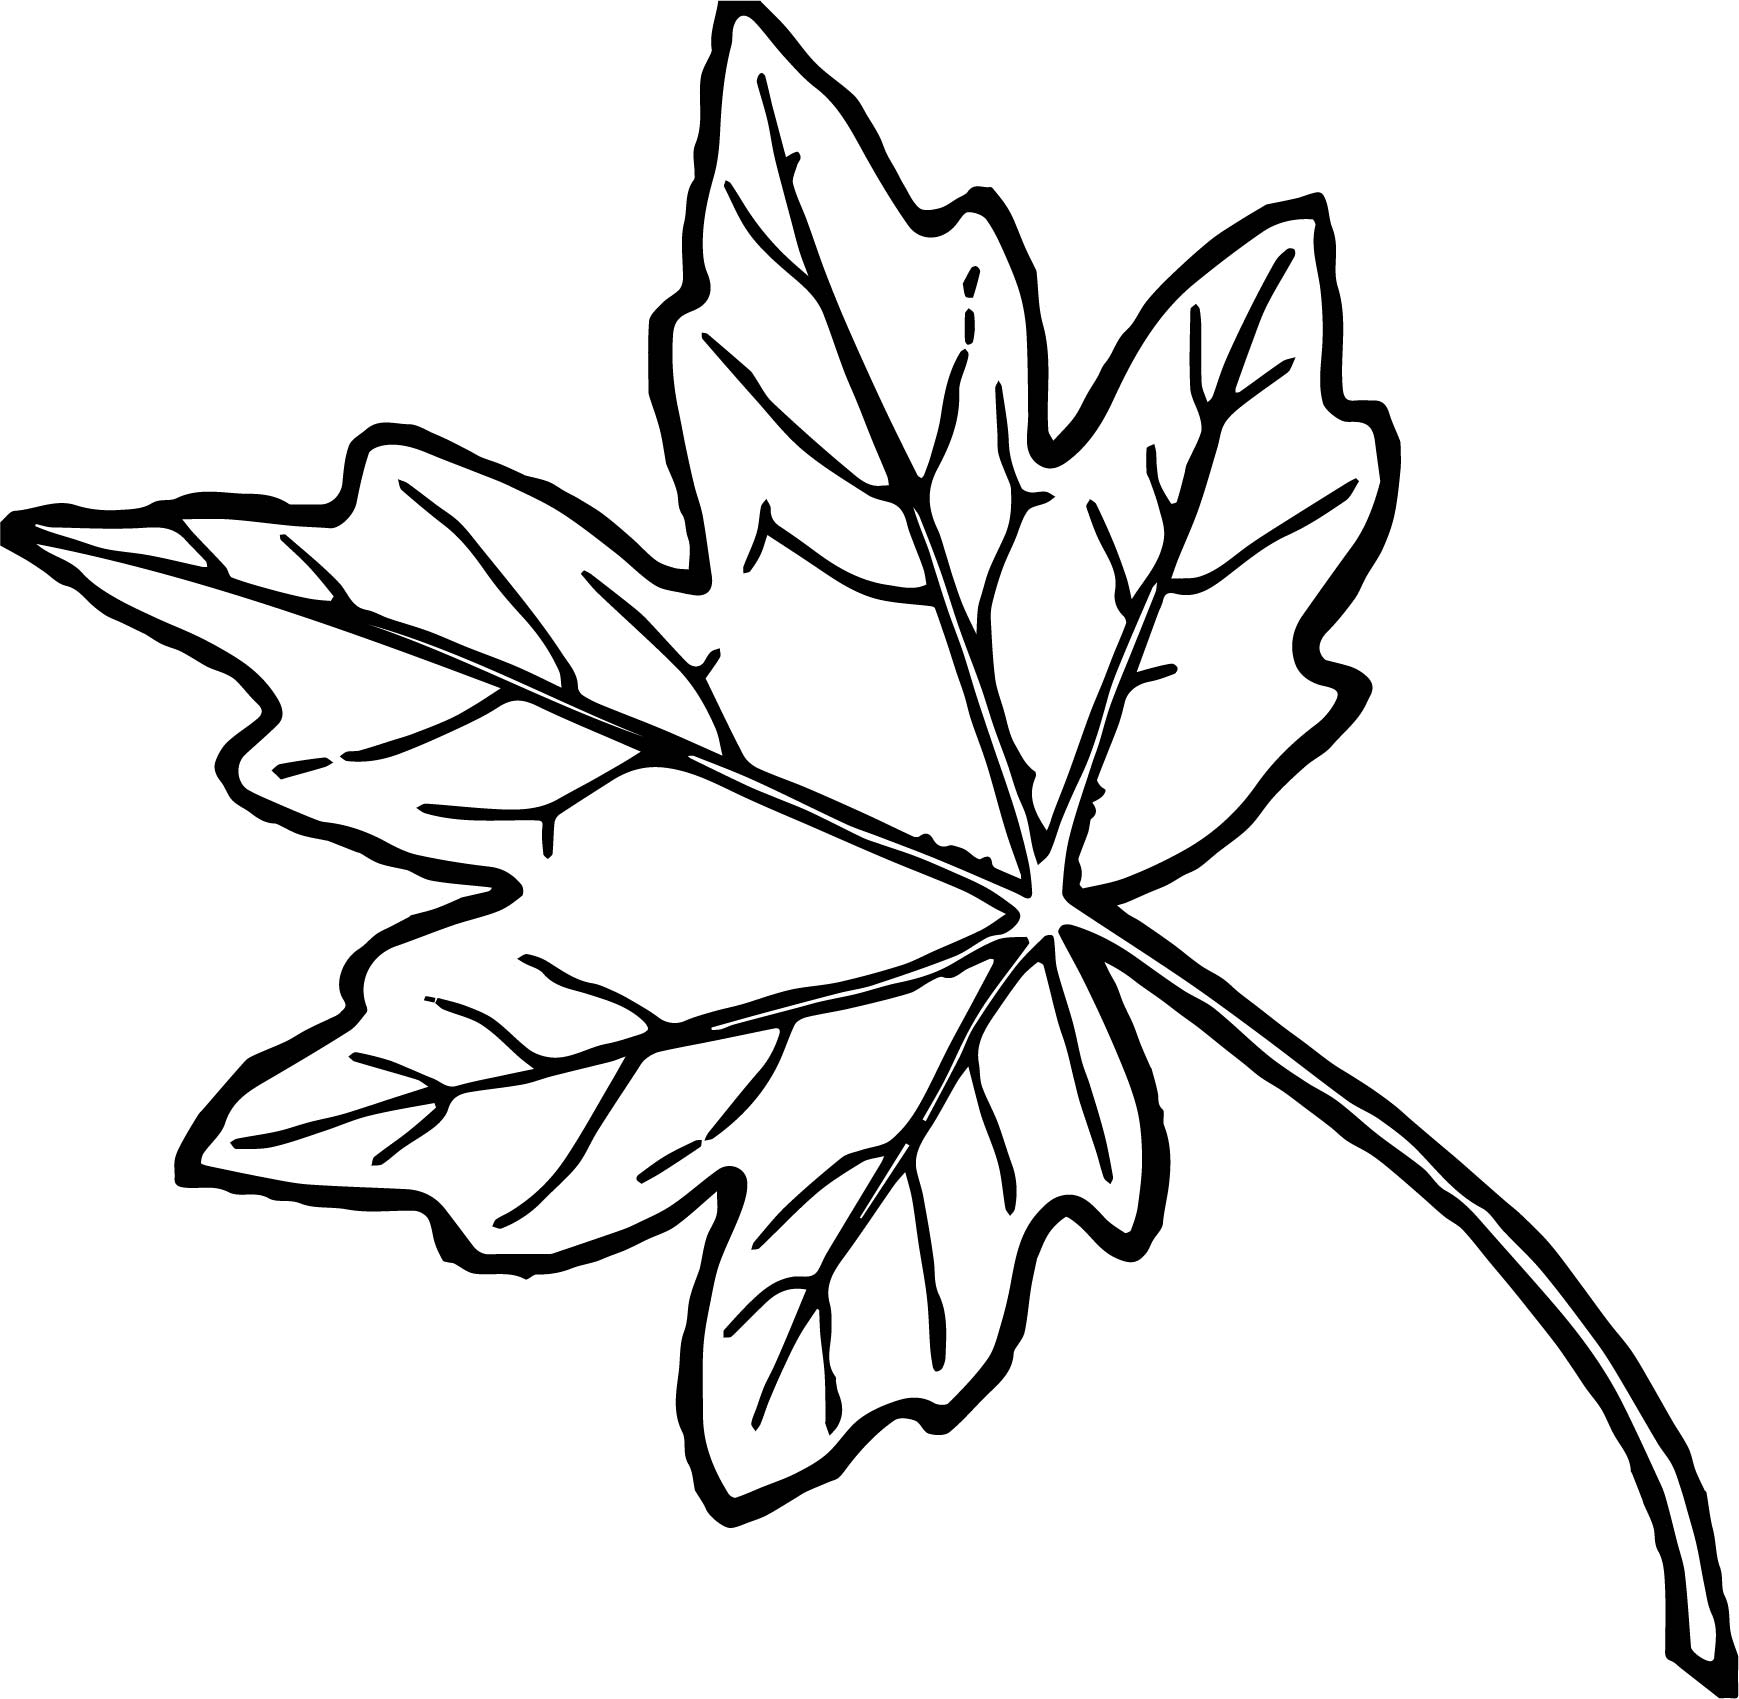 Just Autumn Leaf Coloring Page